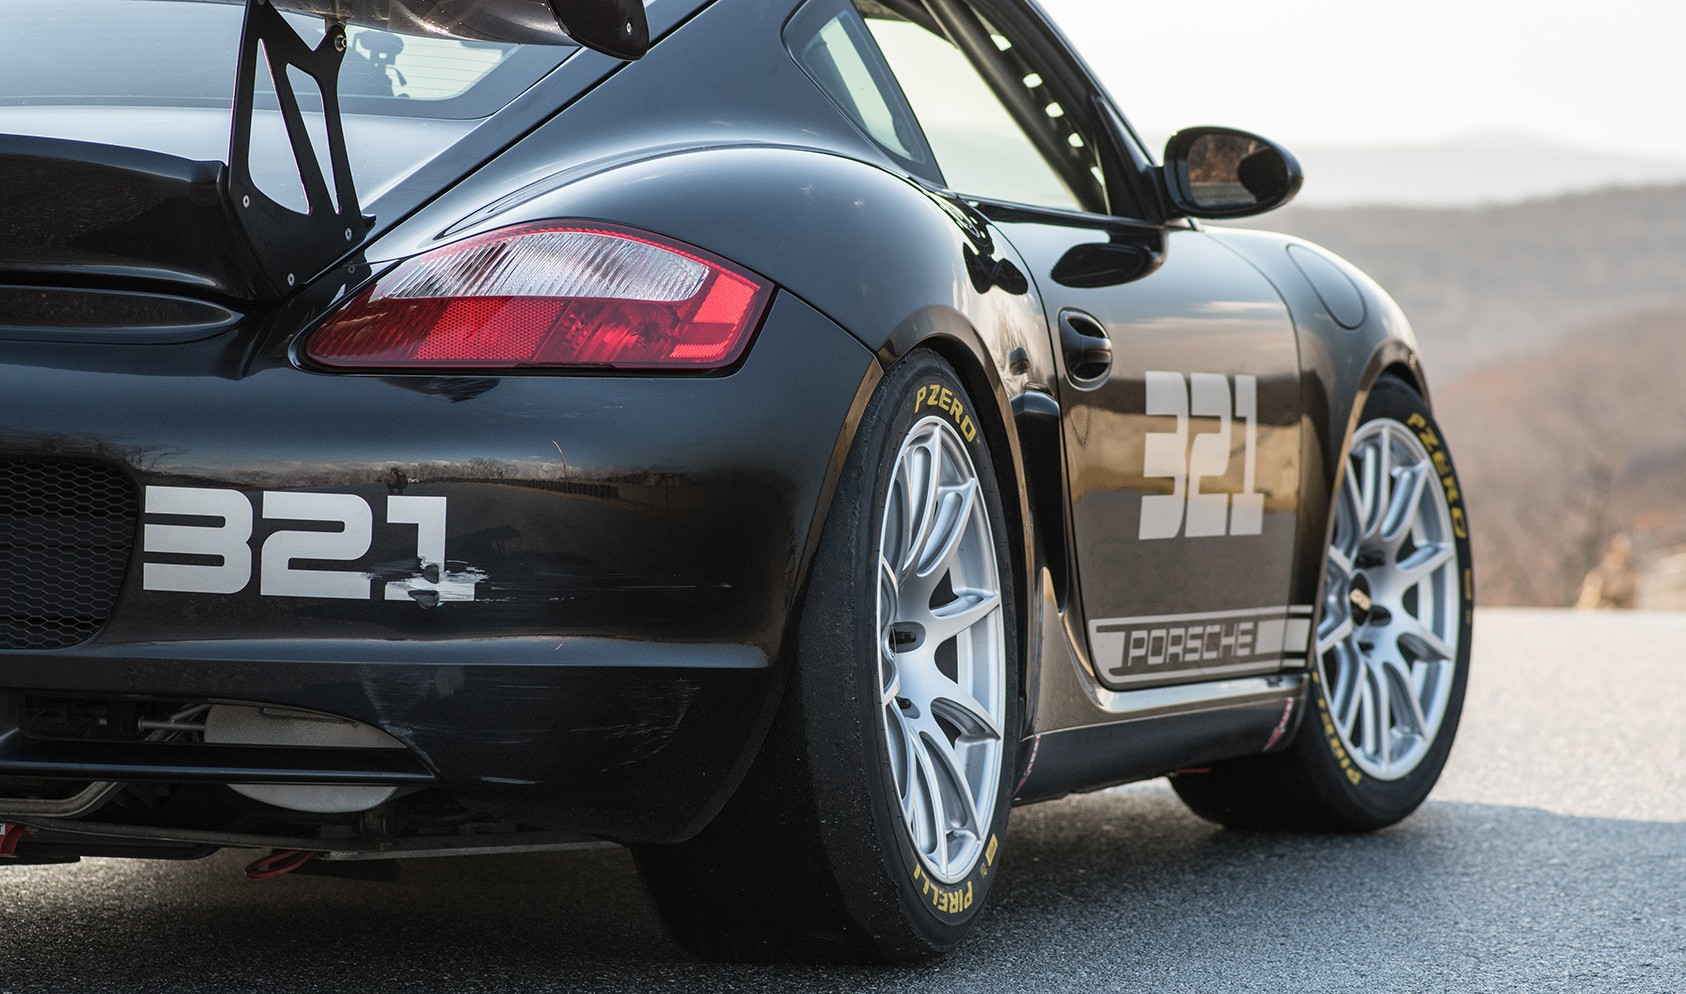 """2006 Cayman S<br />Front: Race Silver SM-10 18x9"""" ET46 with 265/645-18 Pirelli DH slicks & -3.4° camber<br />Rear: Race Silver 18x10"""" ET36 SM-10 with 305/660-18 Pirelli DH slicks & -3.6° camber"""